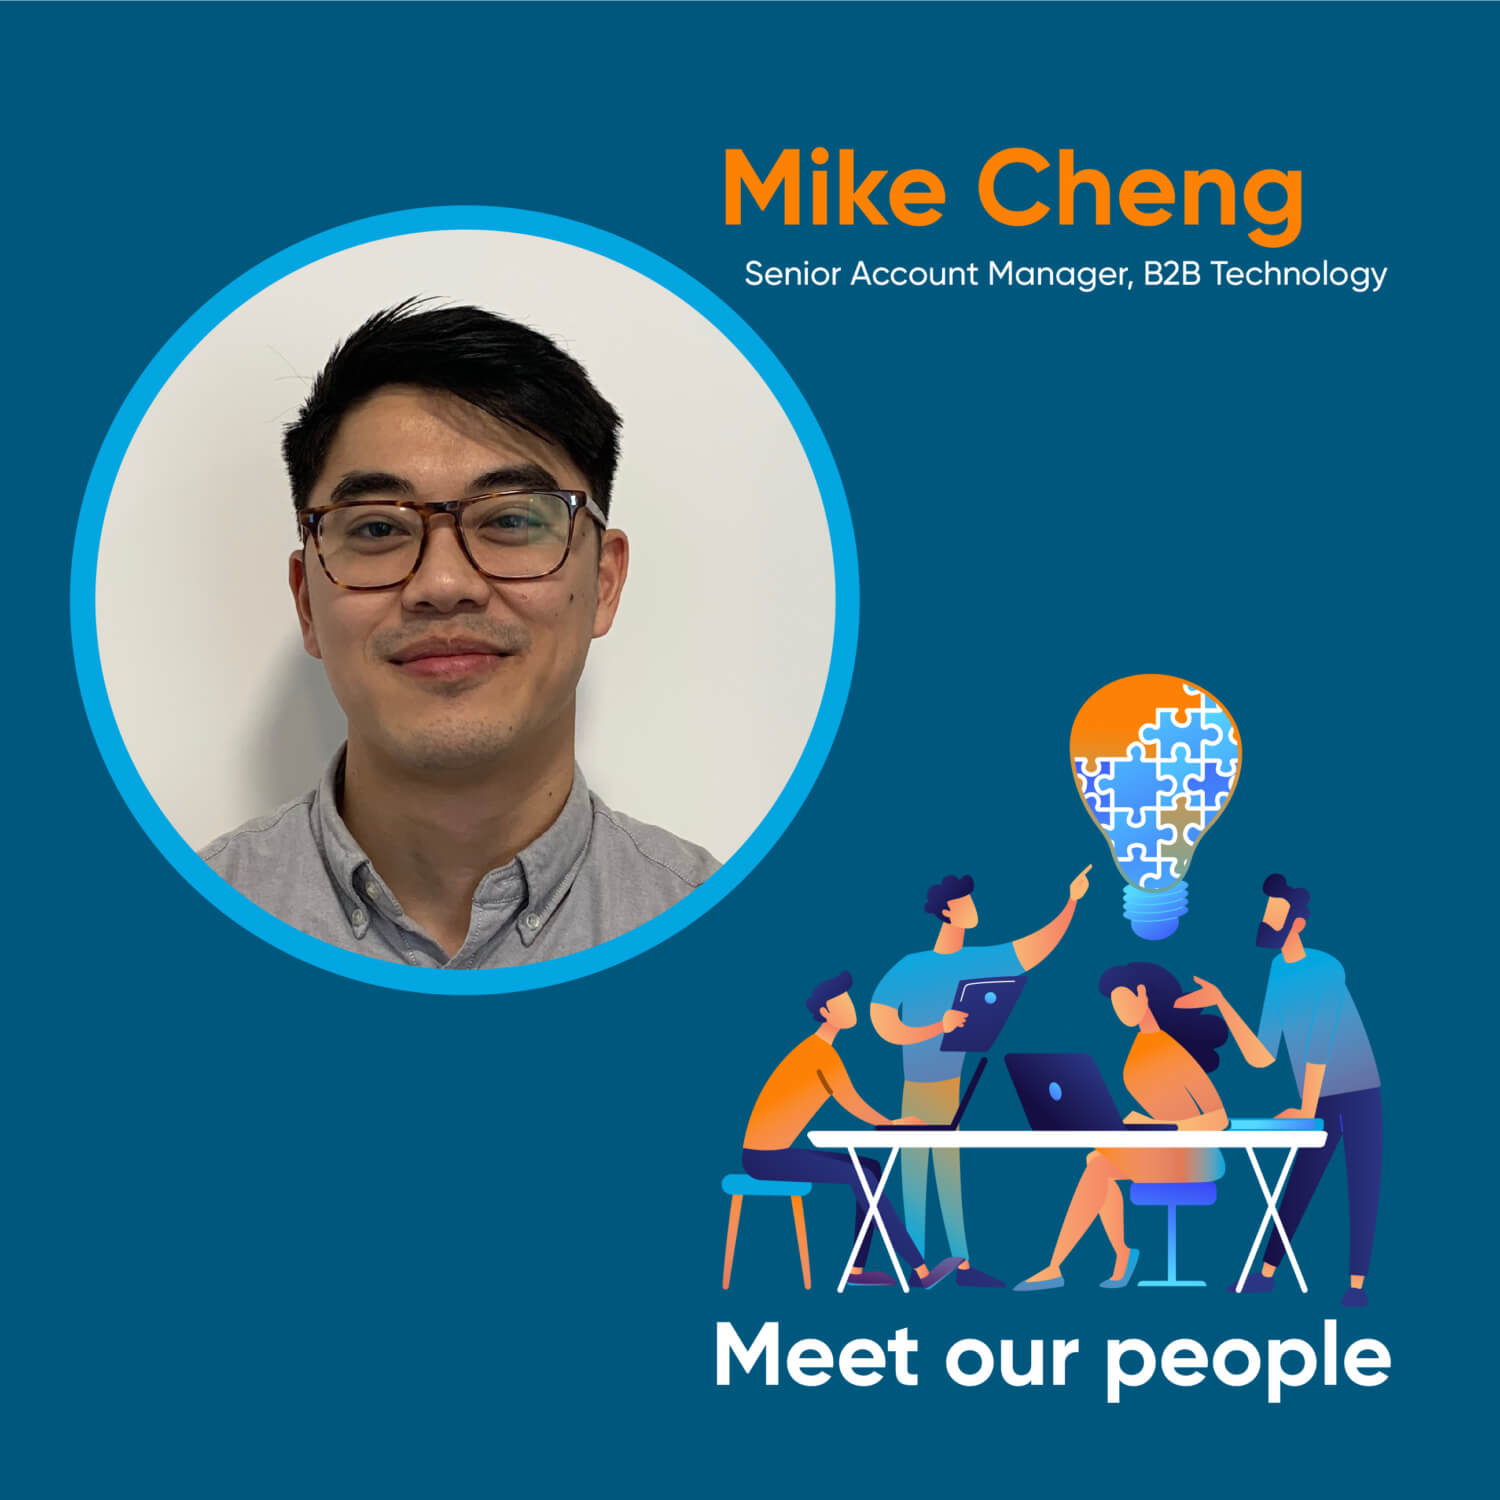 Meet our people, Mike Cheng Senior Account Manager Technology